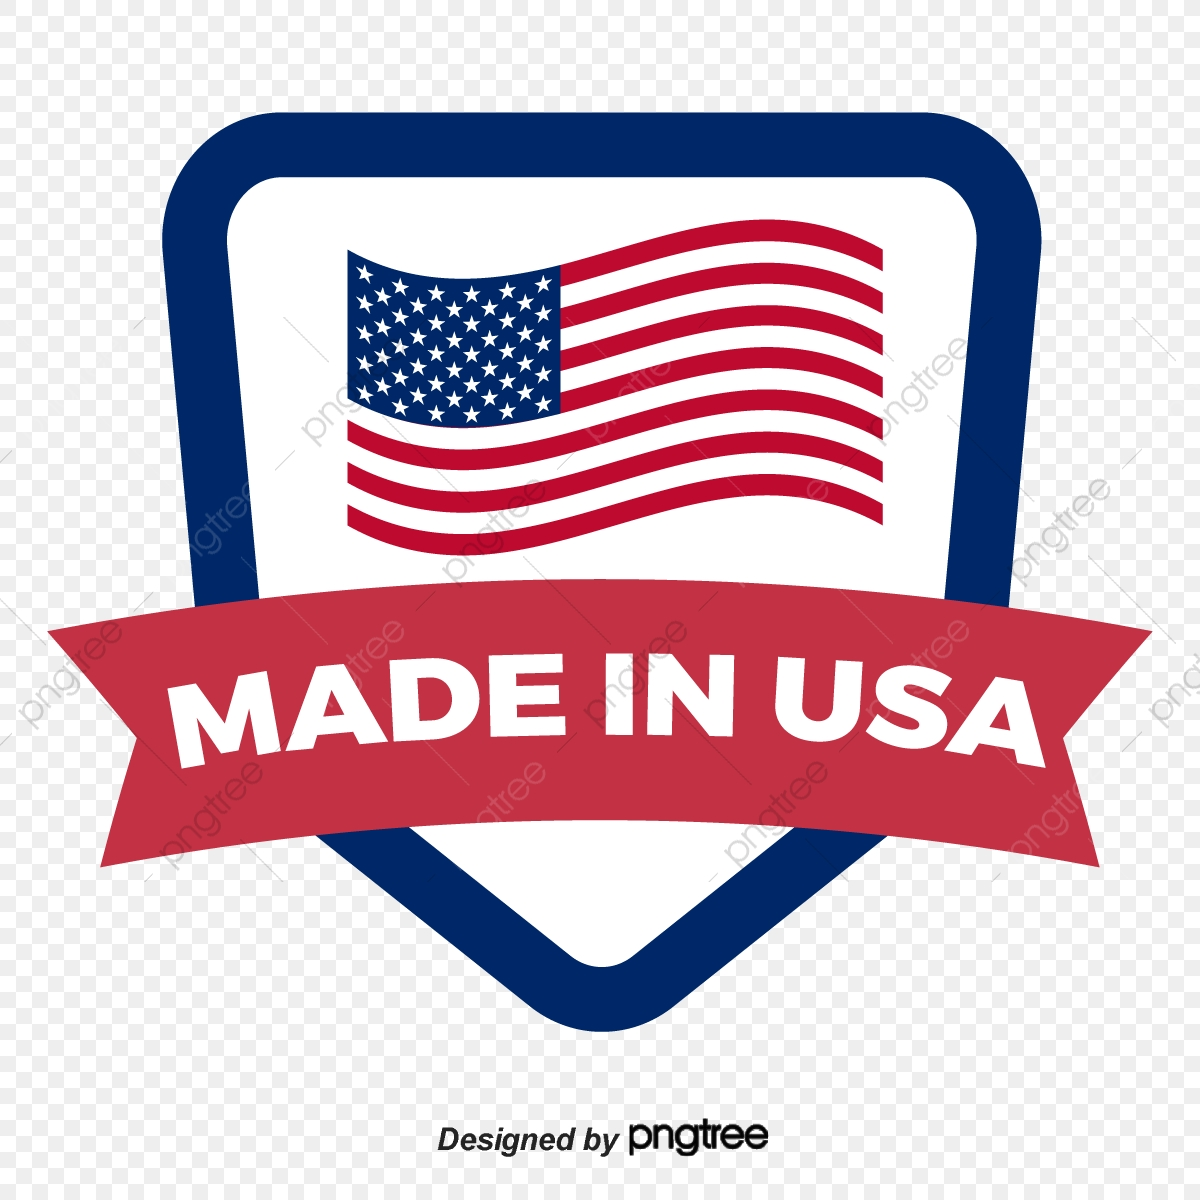 American Flag Flying Made In Usa Trademark Design Logo Made In